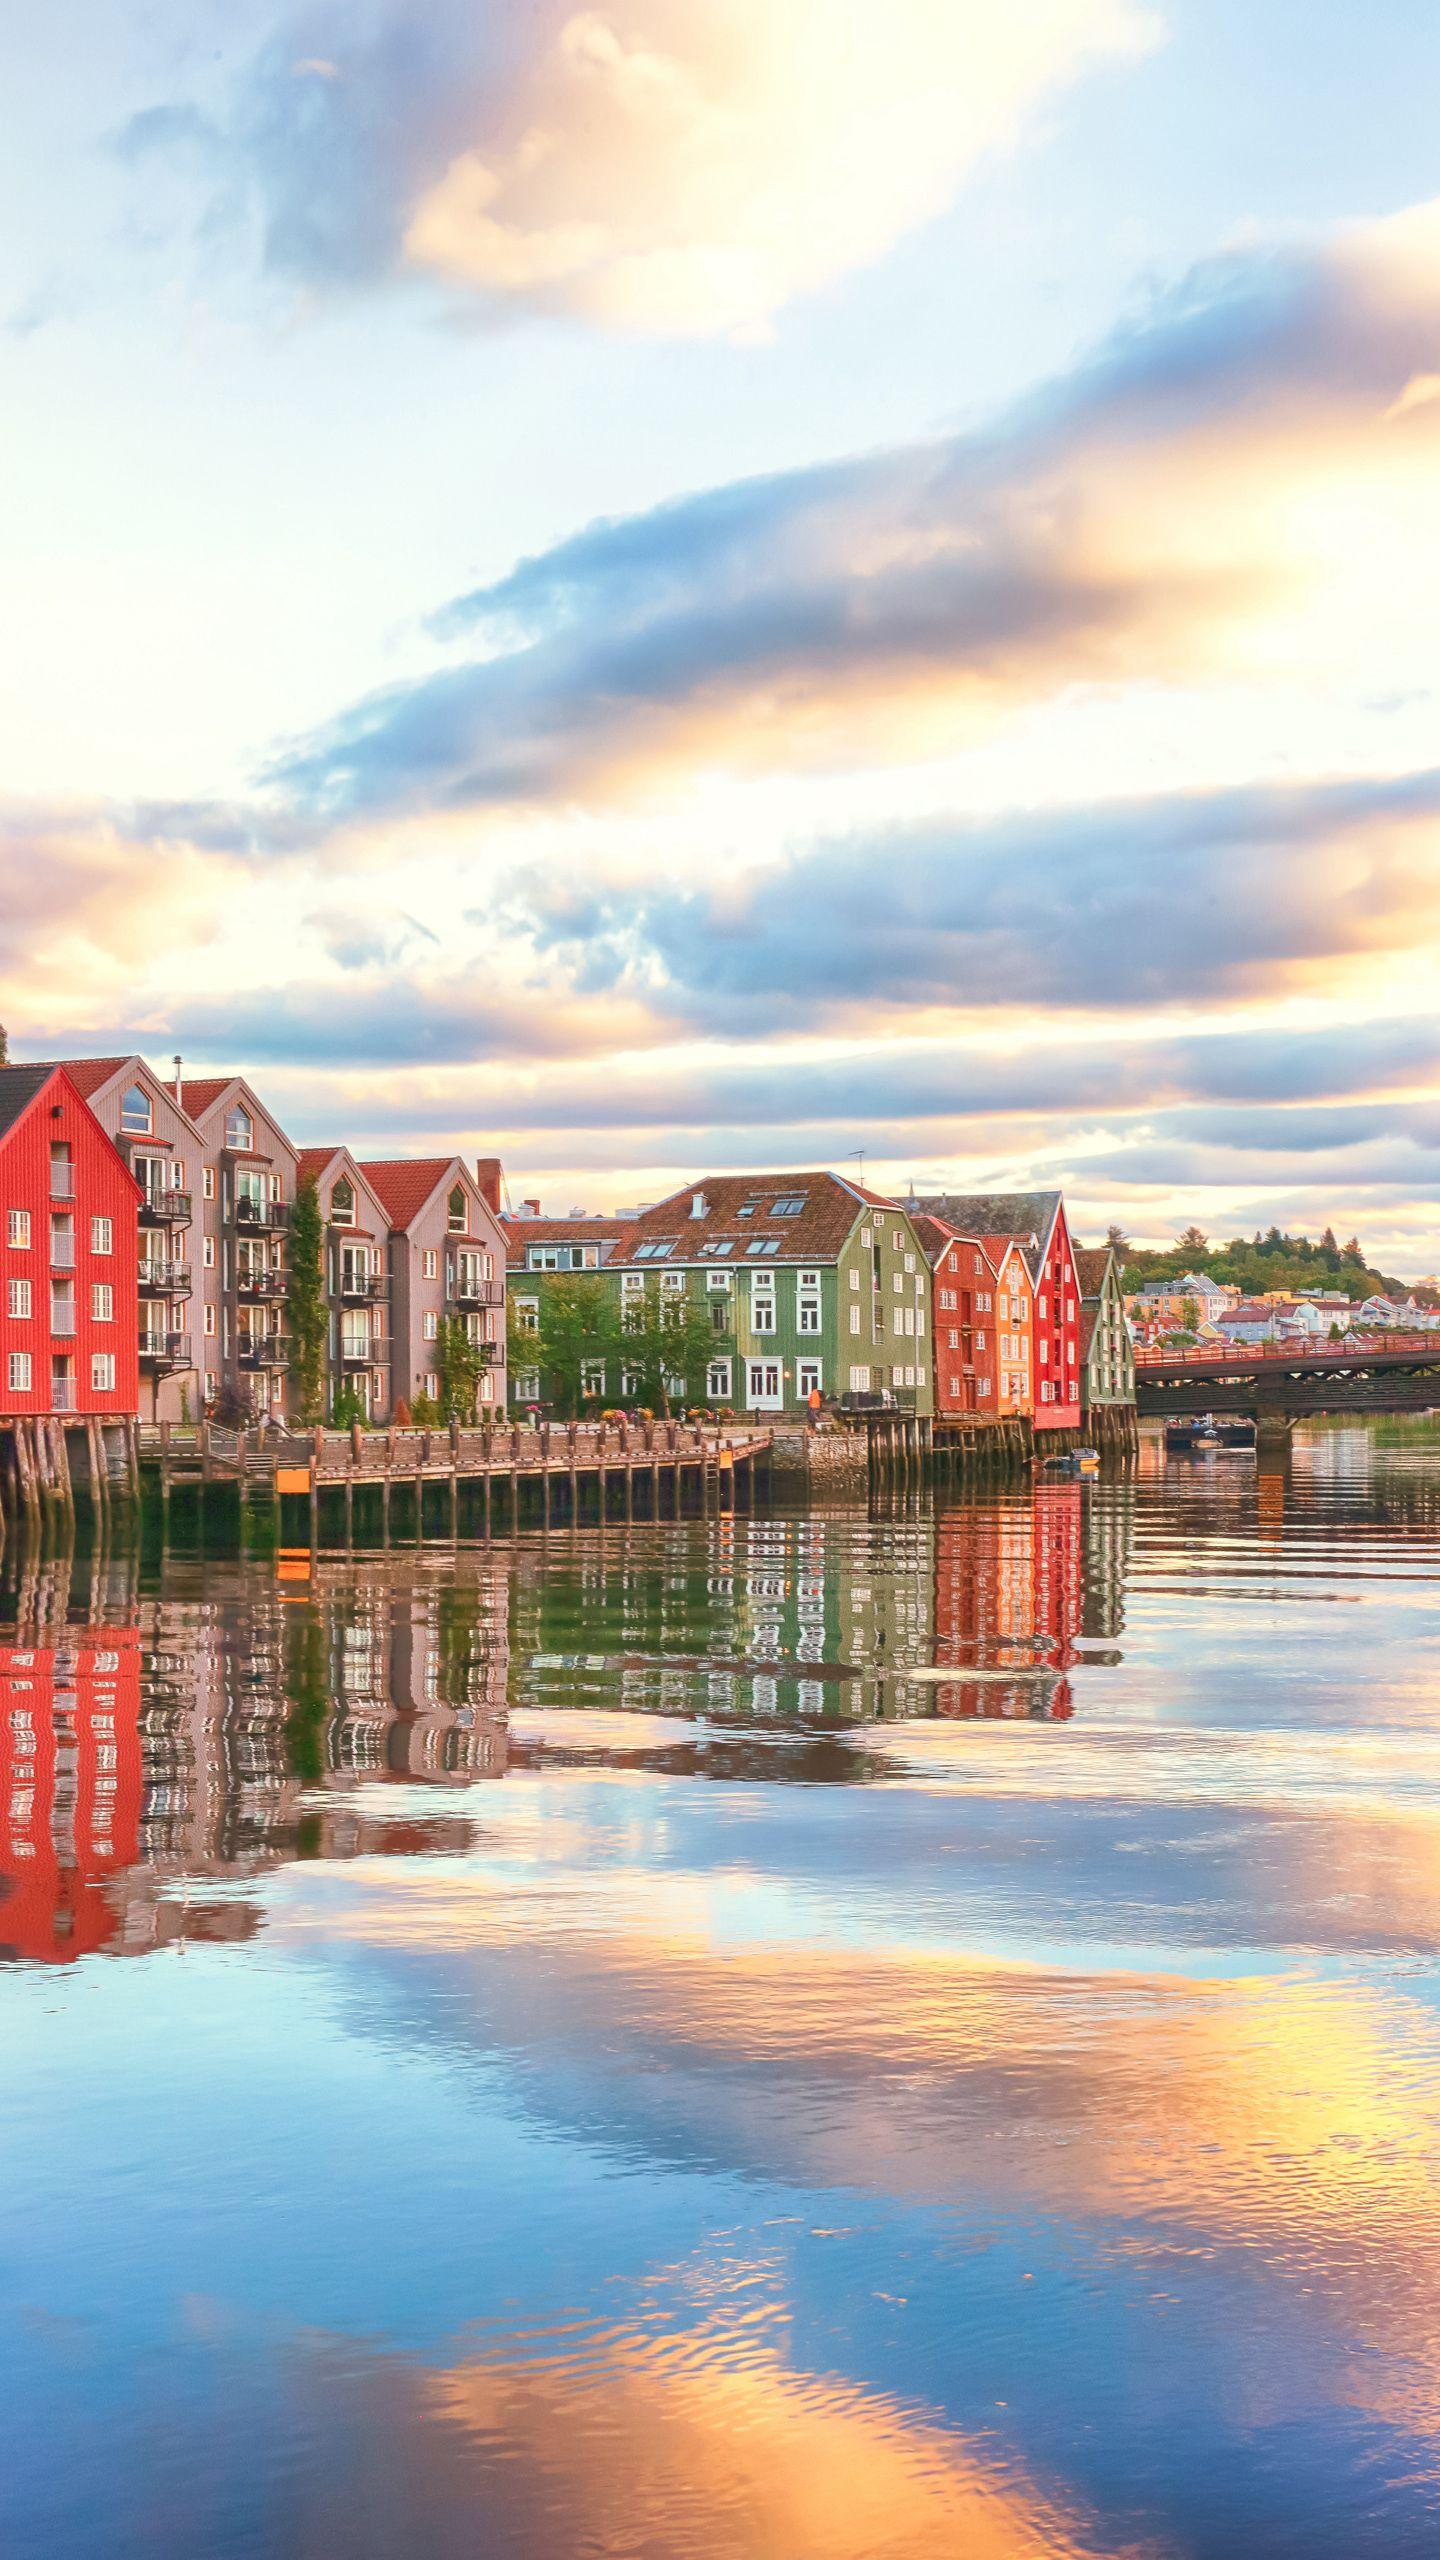 2, Norway Trondheim: Those who look forward to their wedding night will never end, please head in the direction of the Northern Lights. After the wedding, hold a sleepless party, you can dance in the morning sky in Norway.